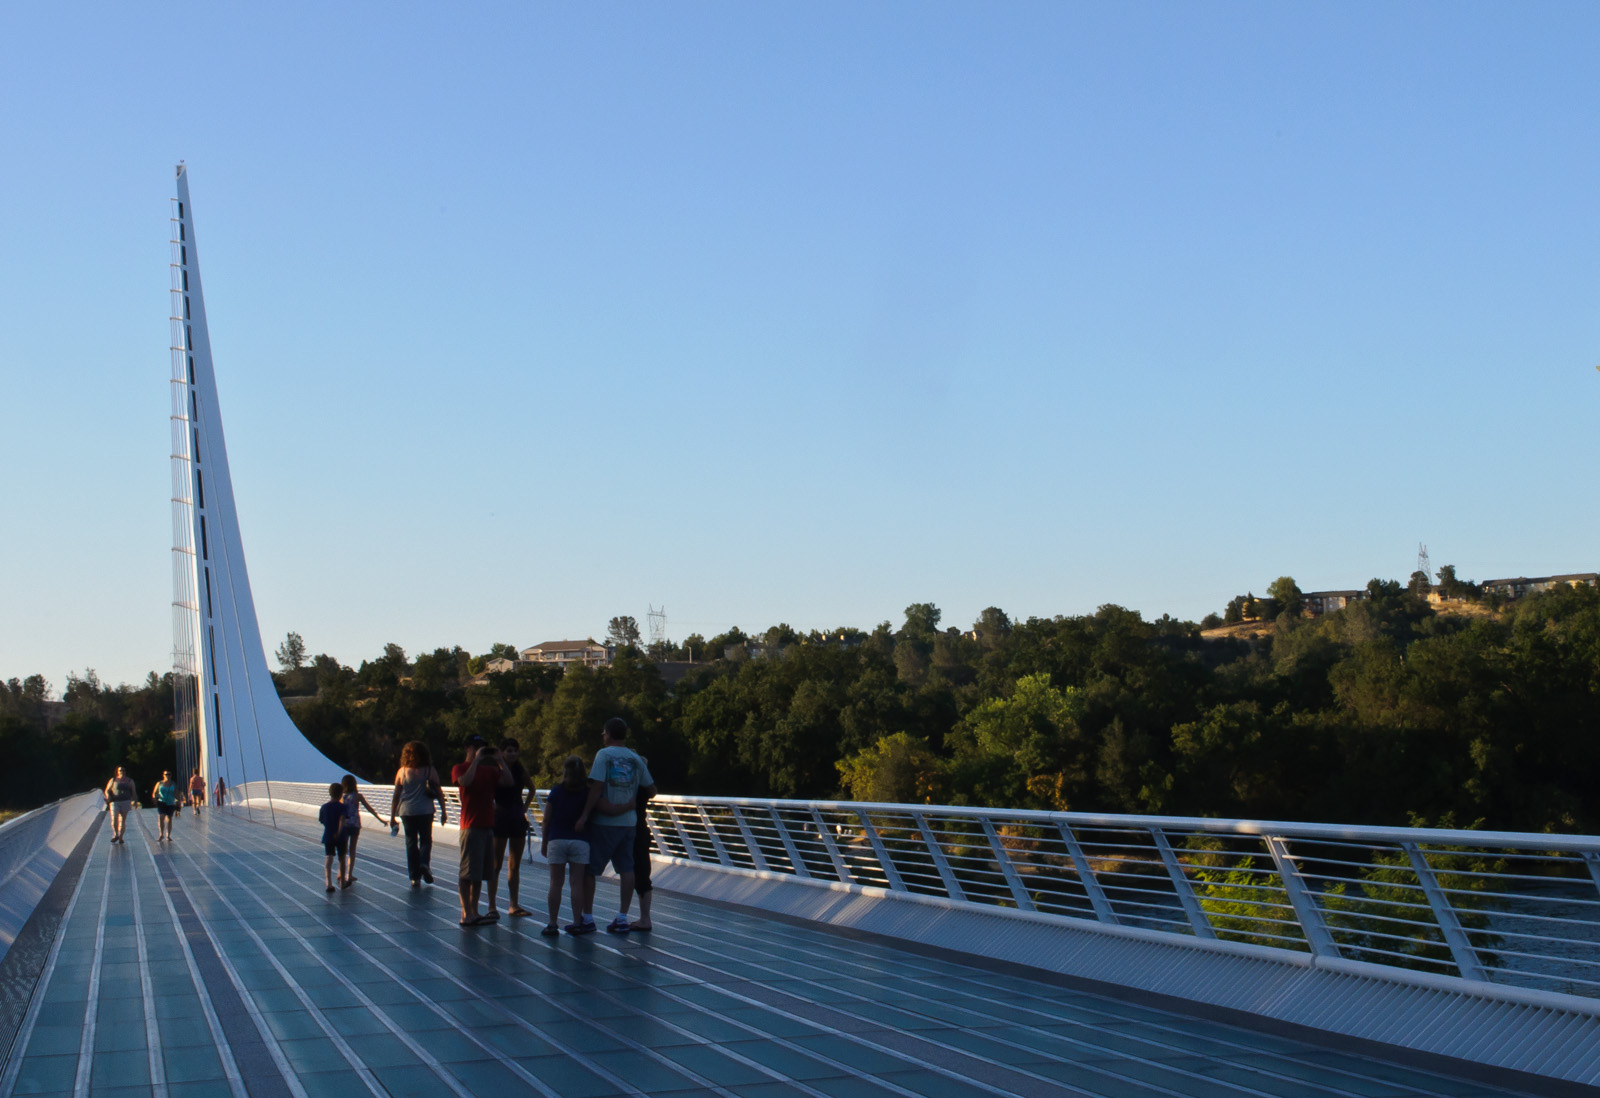 Architect Valencia File:sundial Bridge, Redding (8038347700).jpg - Wikimedia